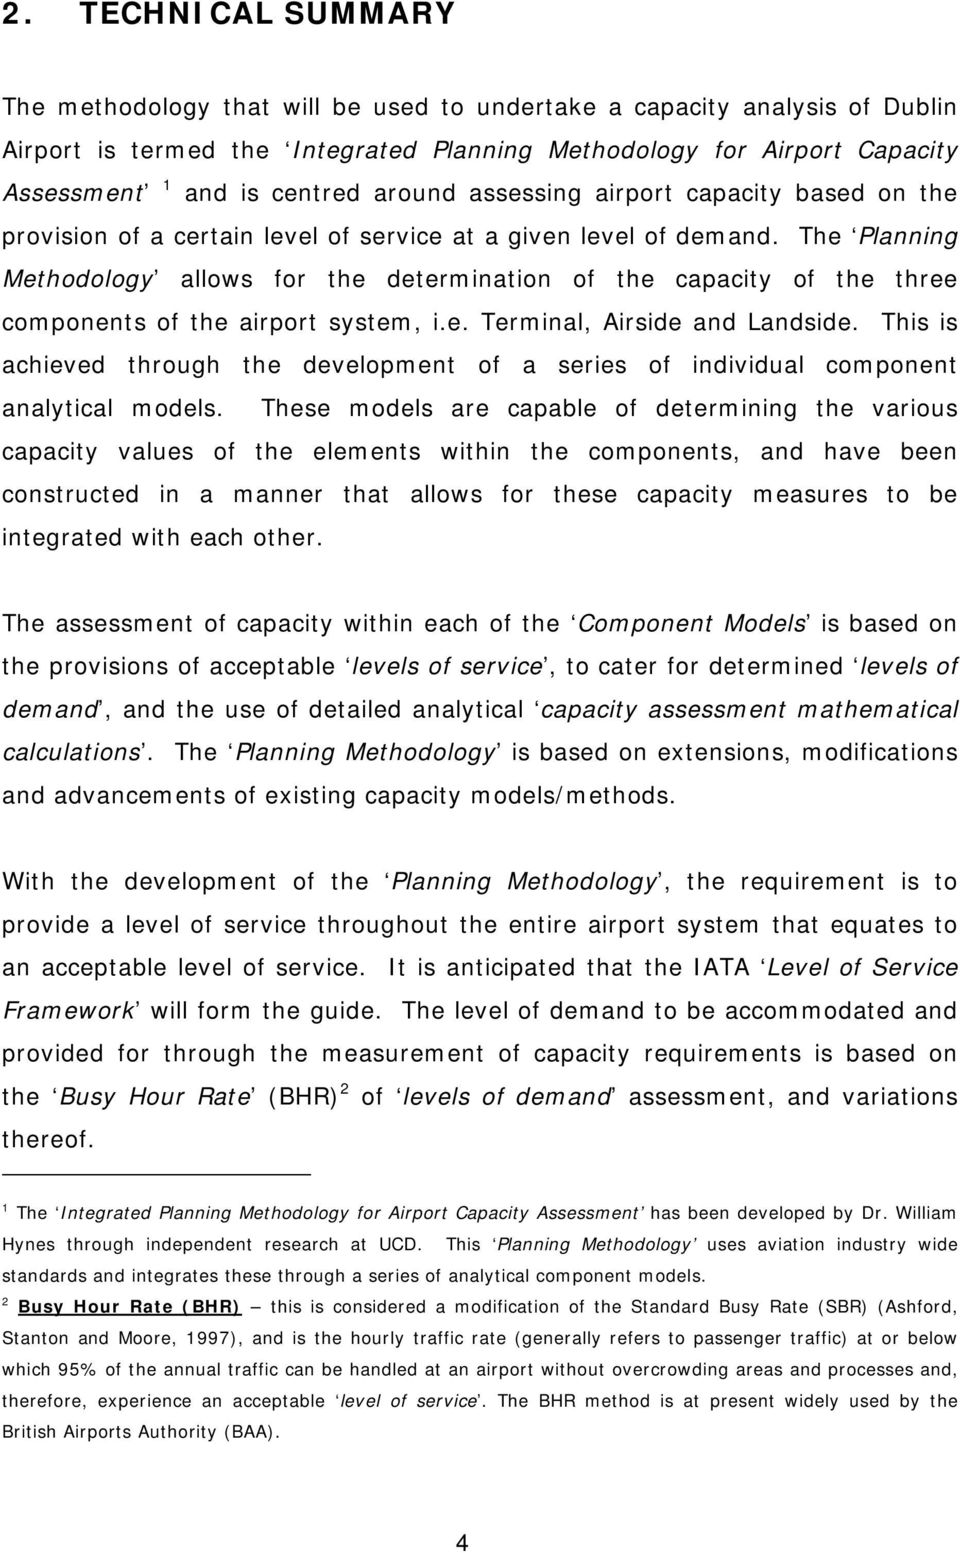 The Planning Methodology allows for the determination of the capacity of the three components of the airport system, i.e. Terminal, Airside and Landside.